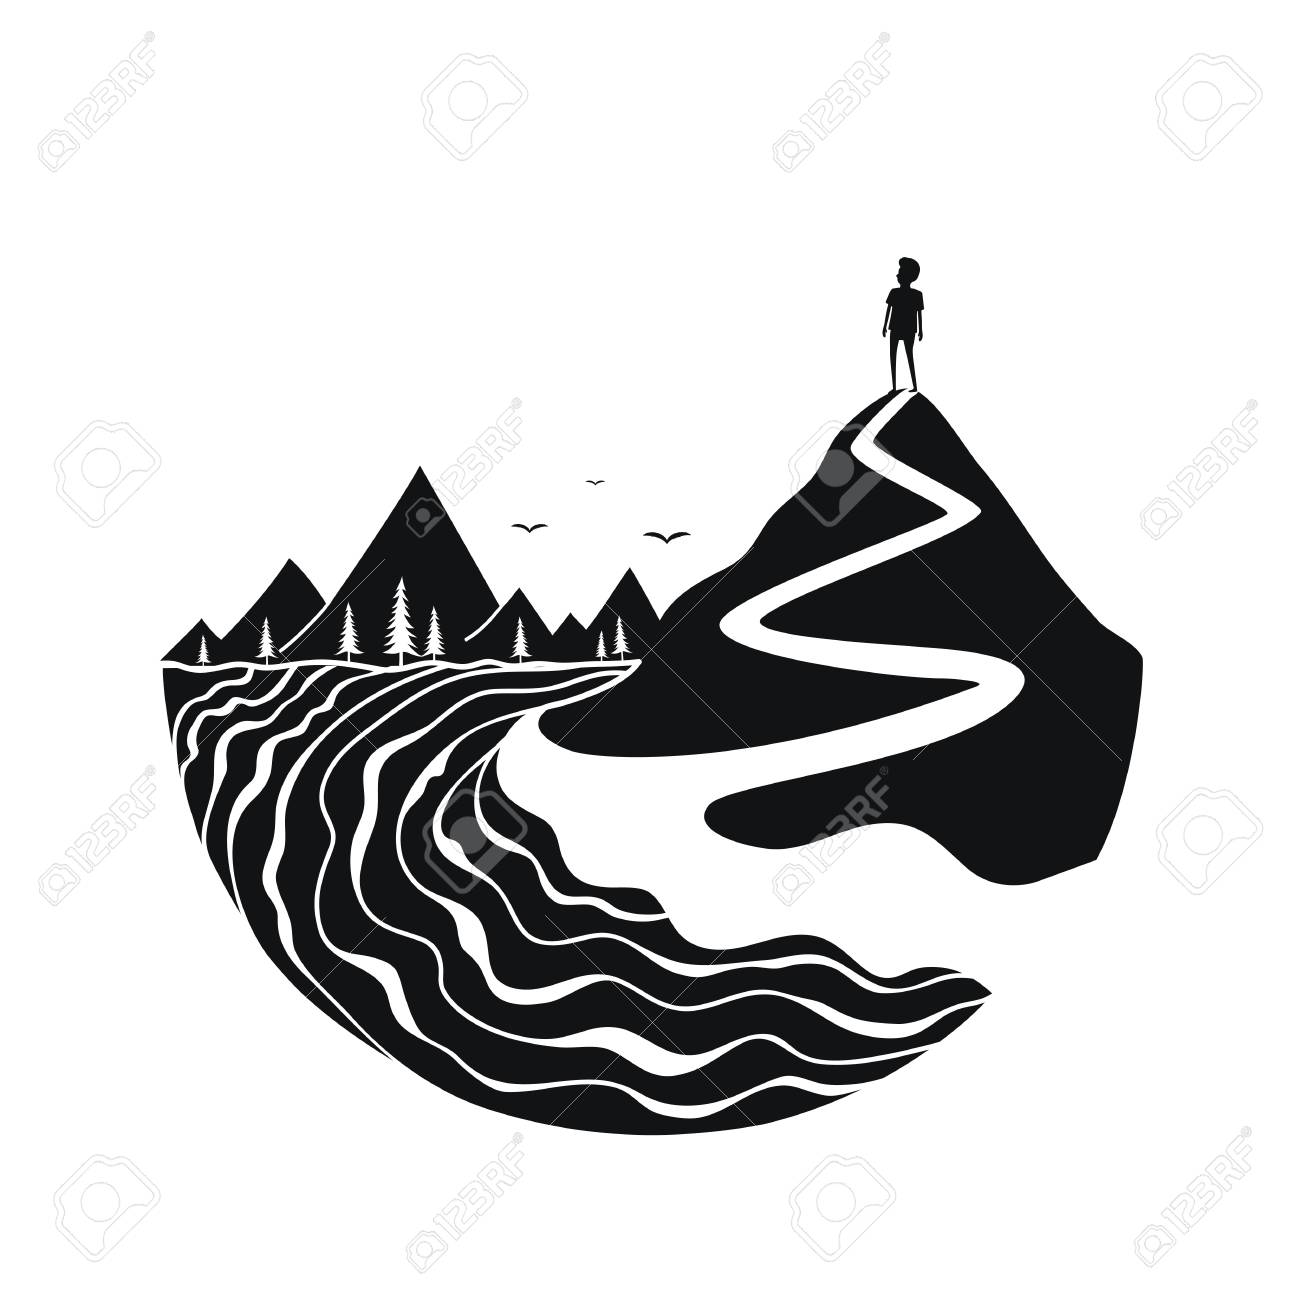 black and white print design with river birds mountains trail royalty free cliparts vectors and stock illustration image 122681728 black and white print design with river birds mountains trail